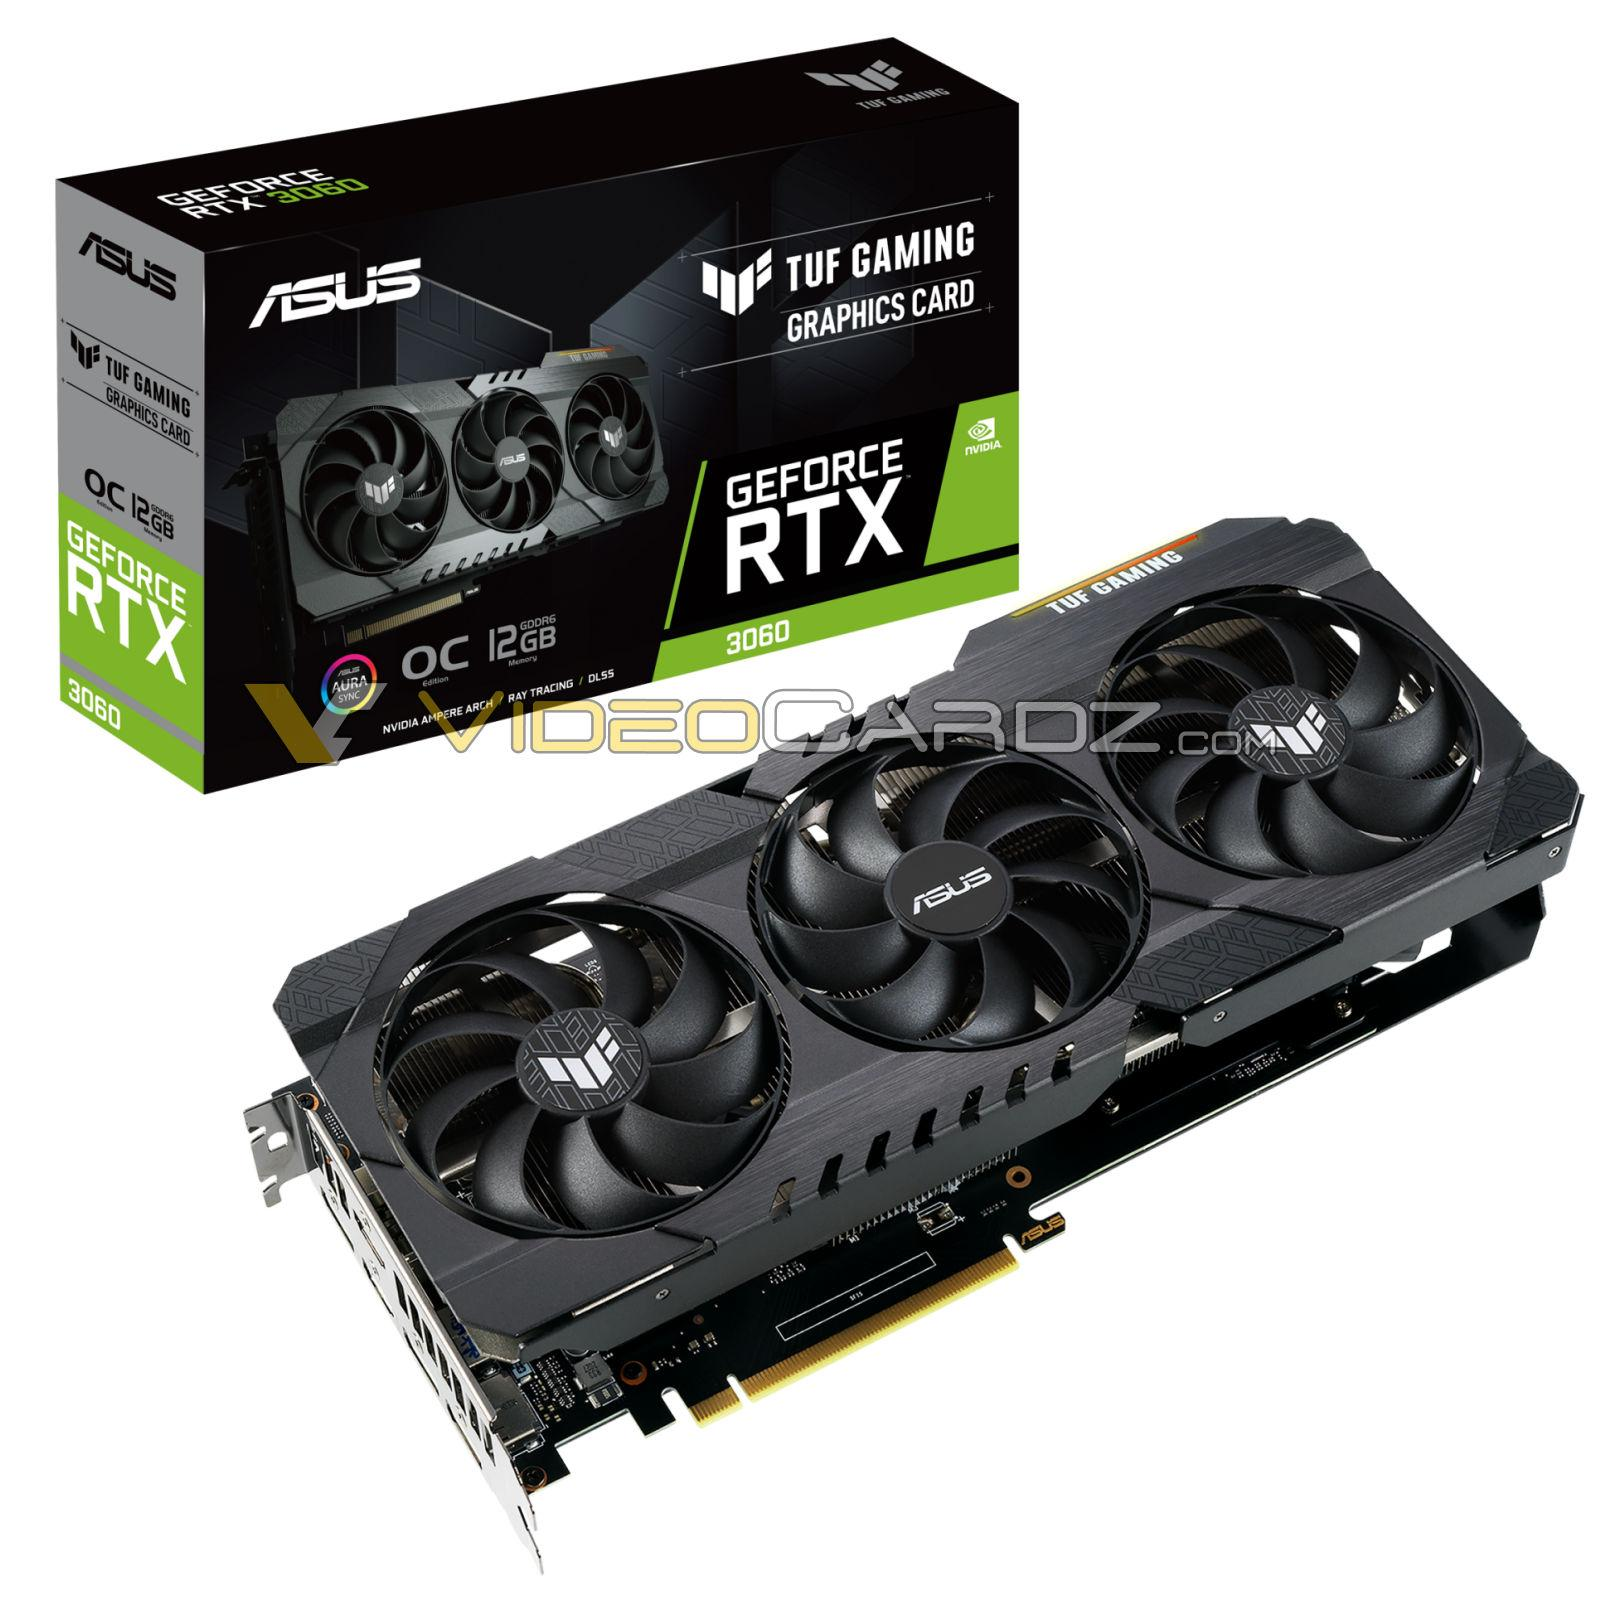 Asus Geforce Rtx 3060 Tuf Gaming 12 Go Gddr6 Graphics Card